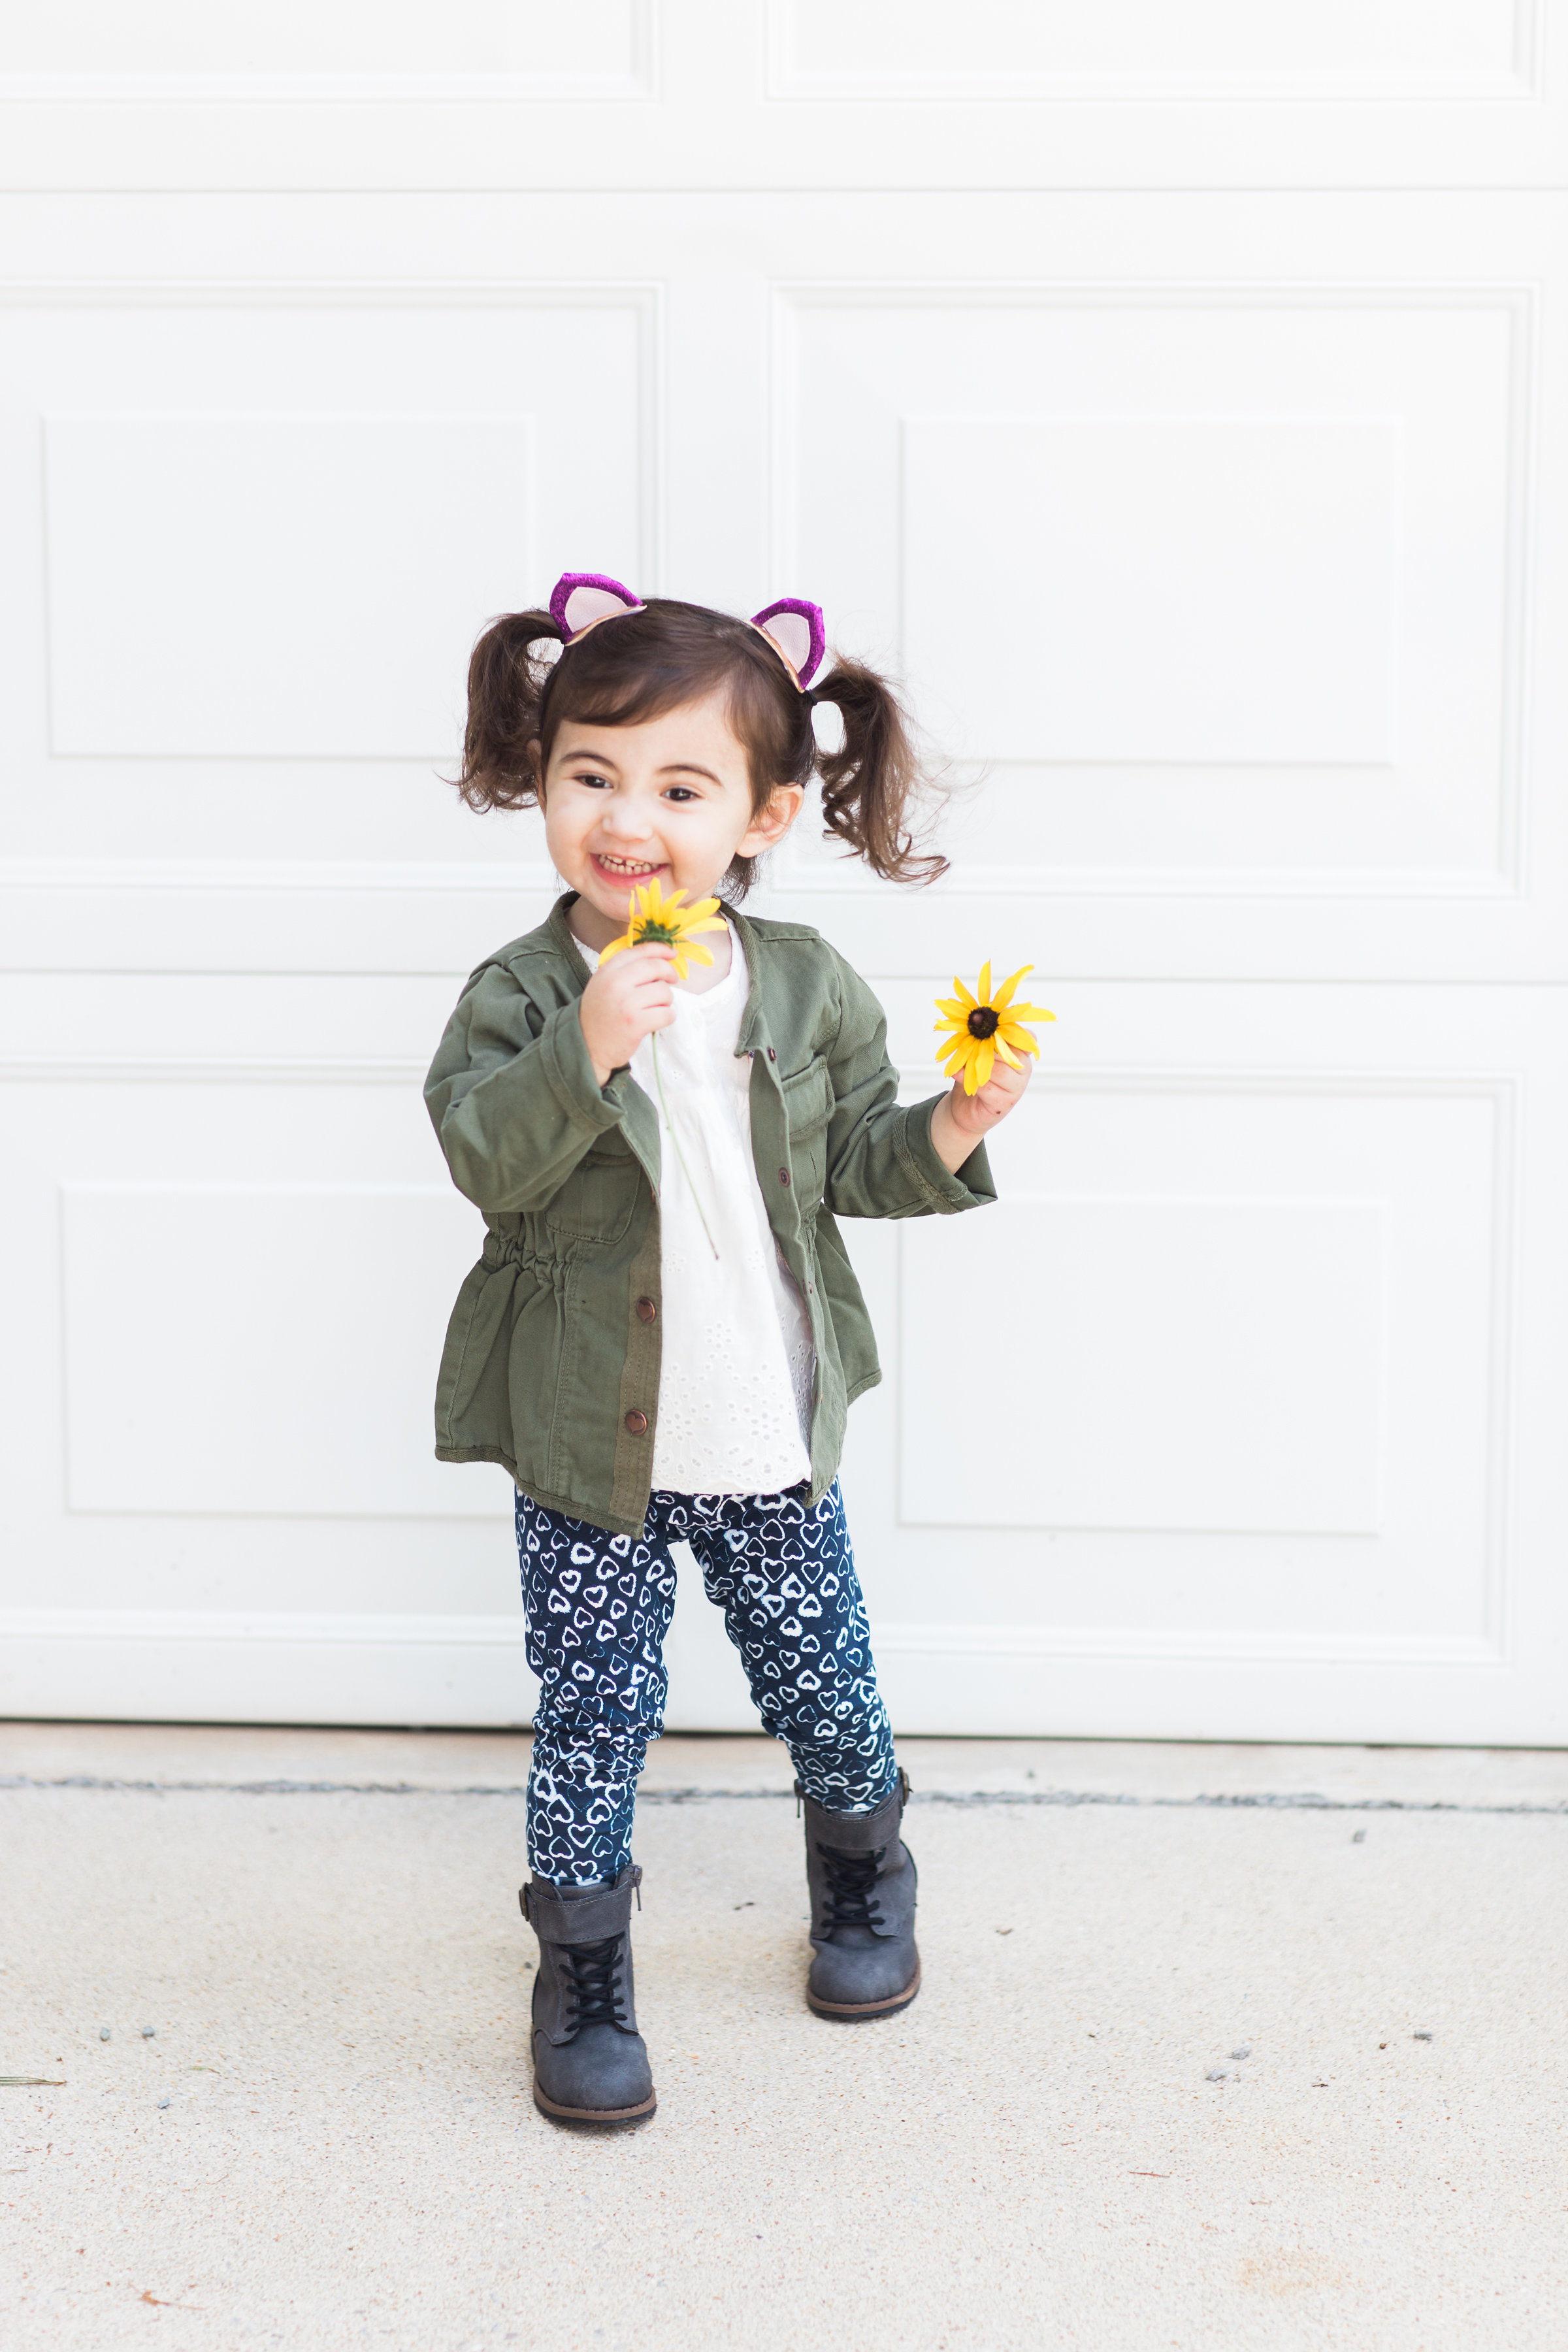 Back-to-School with OshKosh B'gosh - On Her Very First Day of School